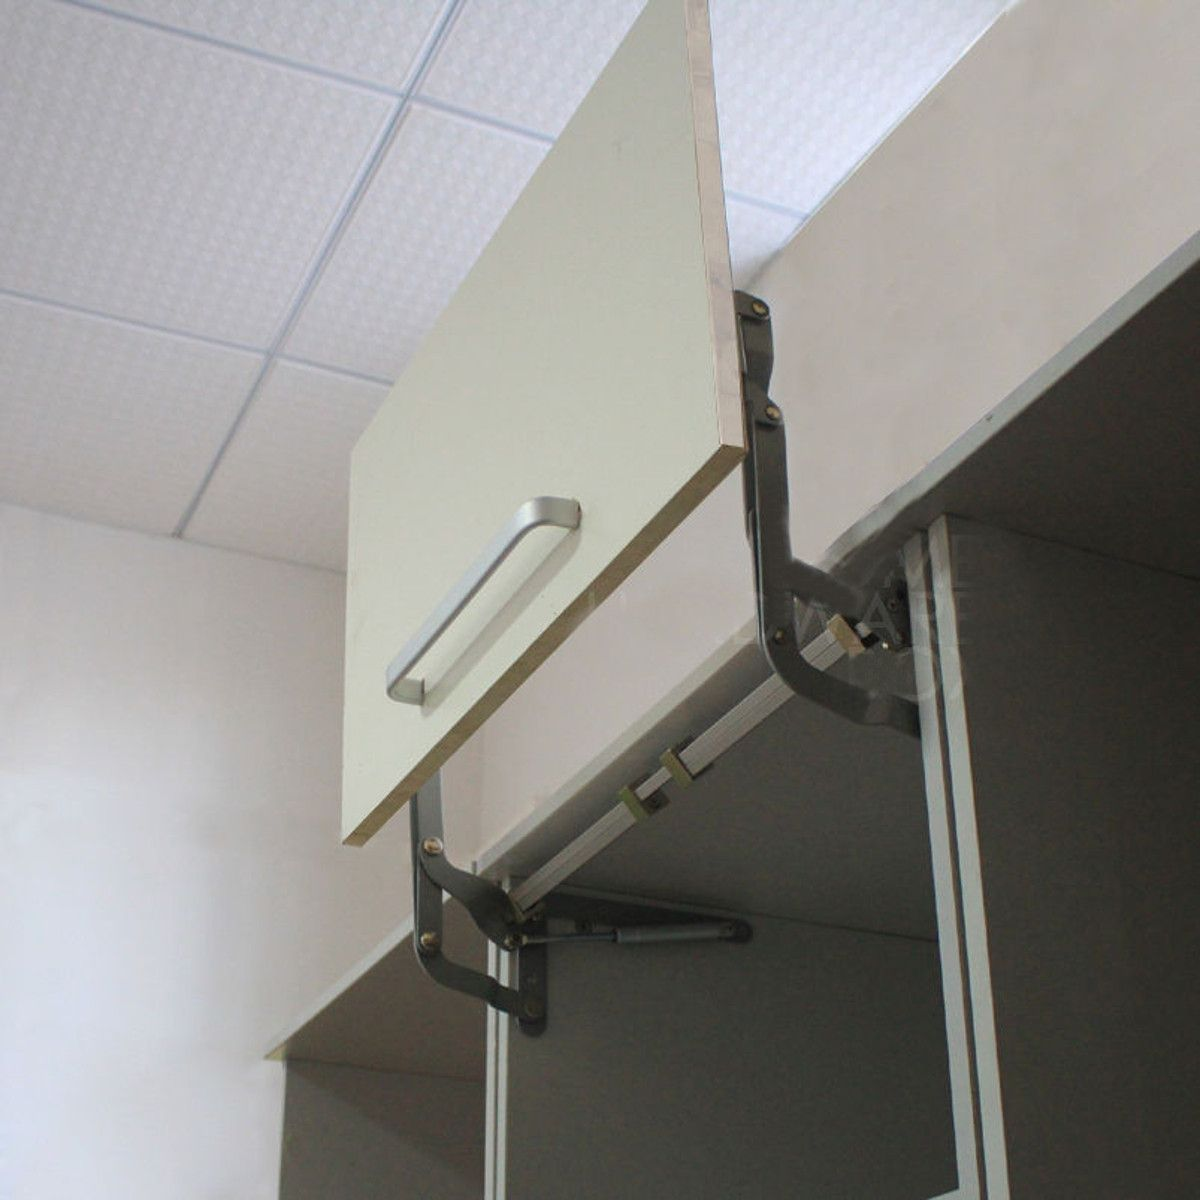 Arm Mechanism Hinges Vertical Swing Lift Up Stay Pneumatic ...